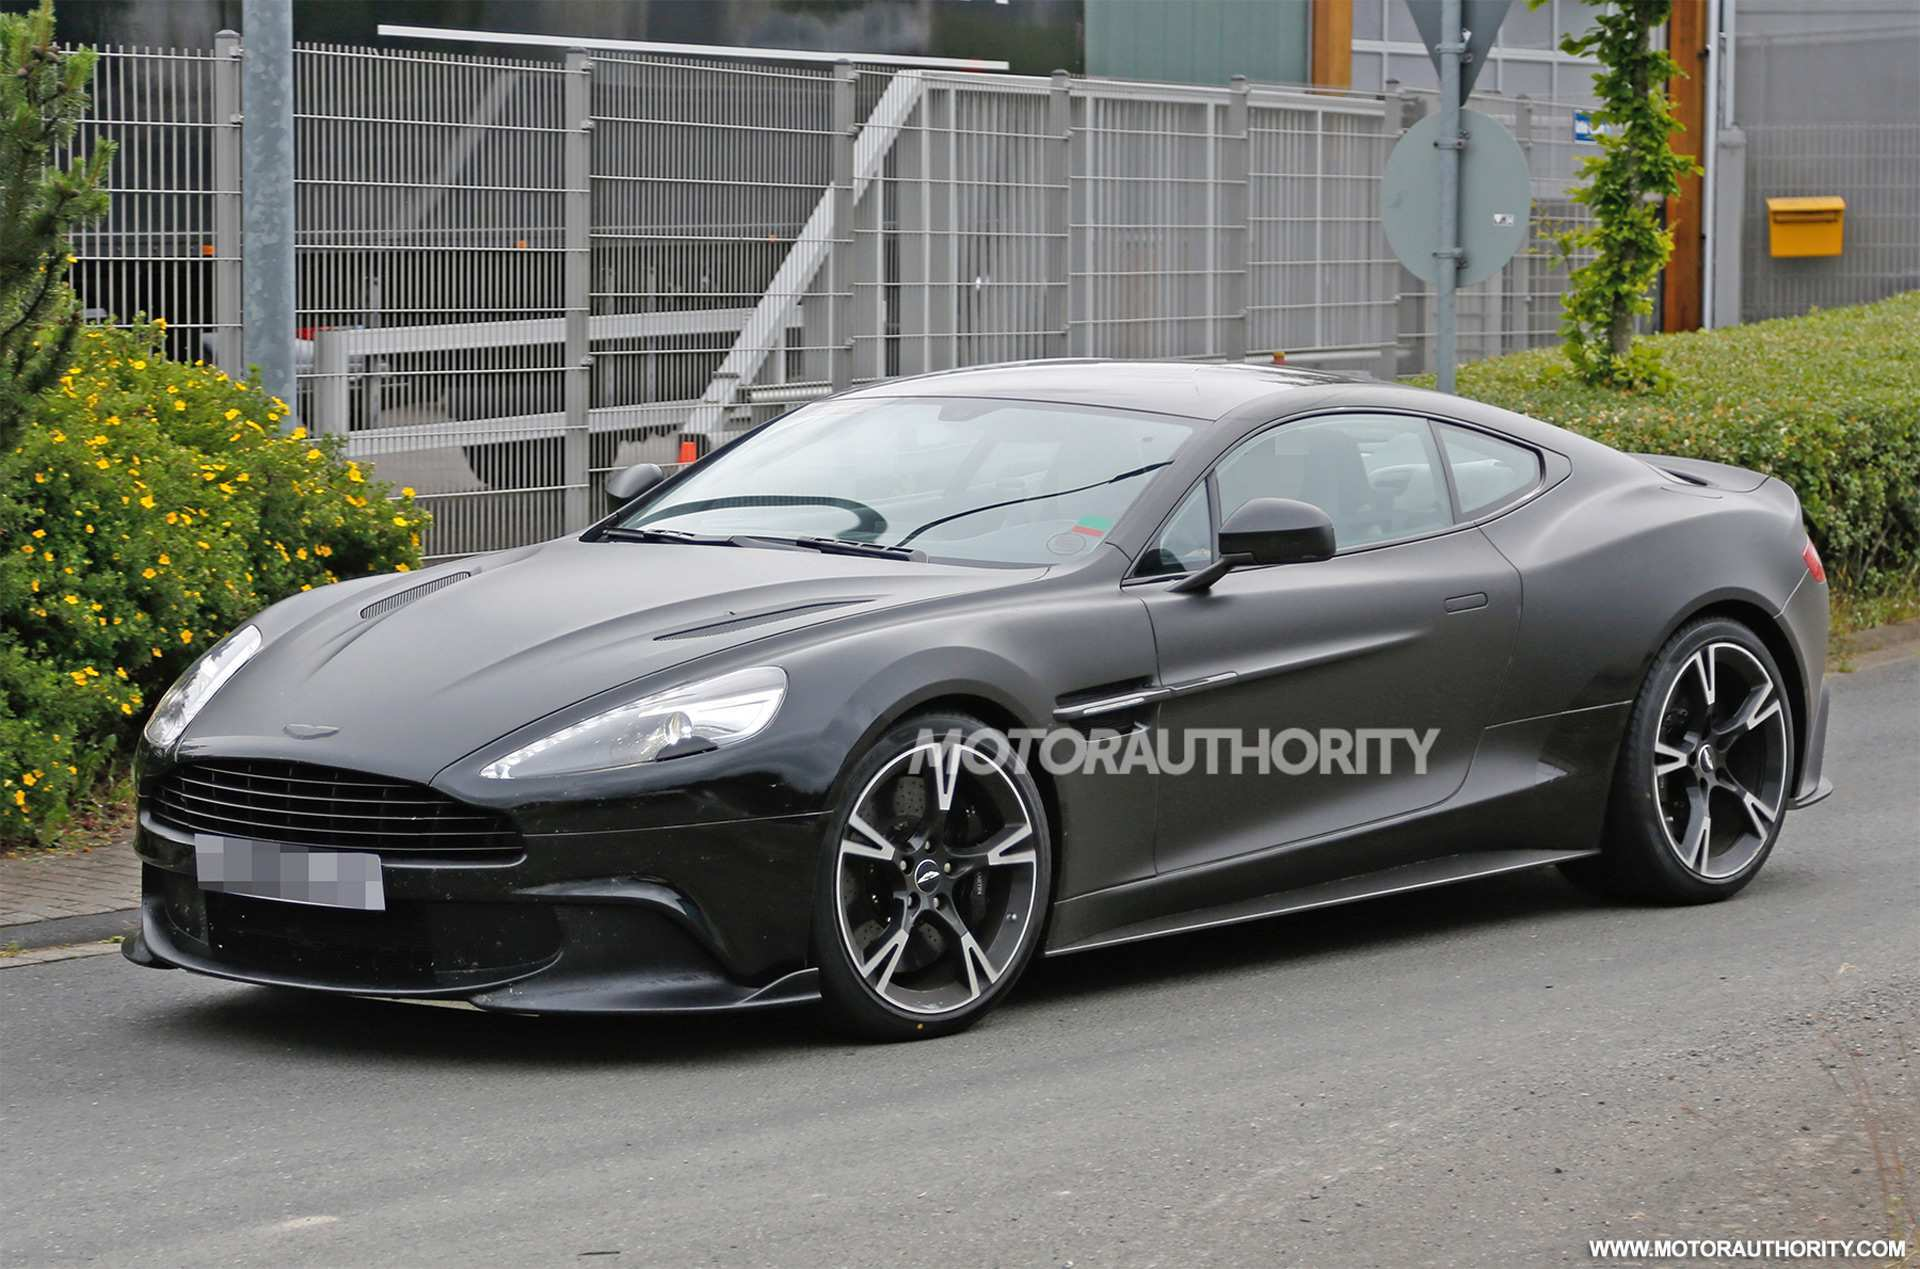 43 Best Review 2019 Aston Martin Vanquish S Images for 2019 Aston Martin Vanquish S